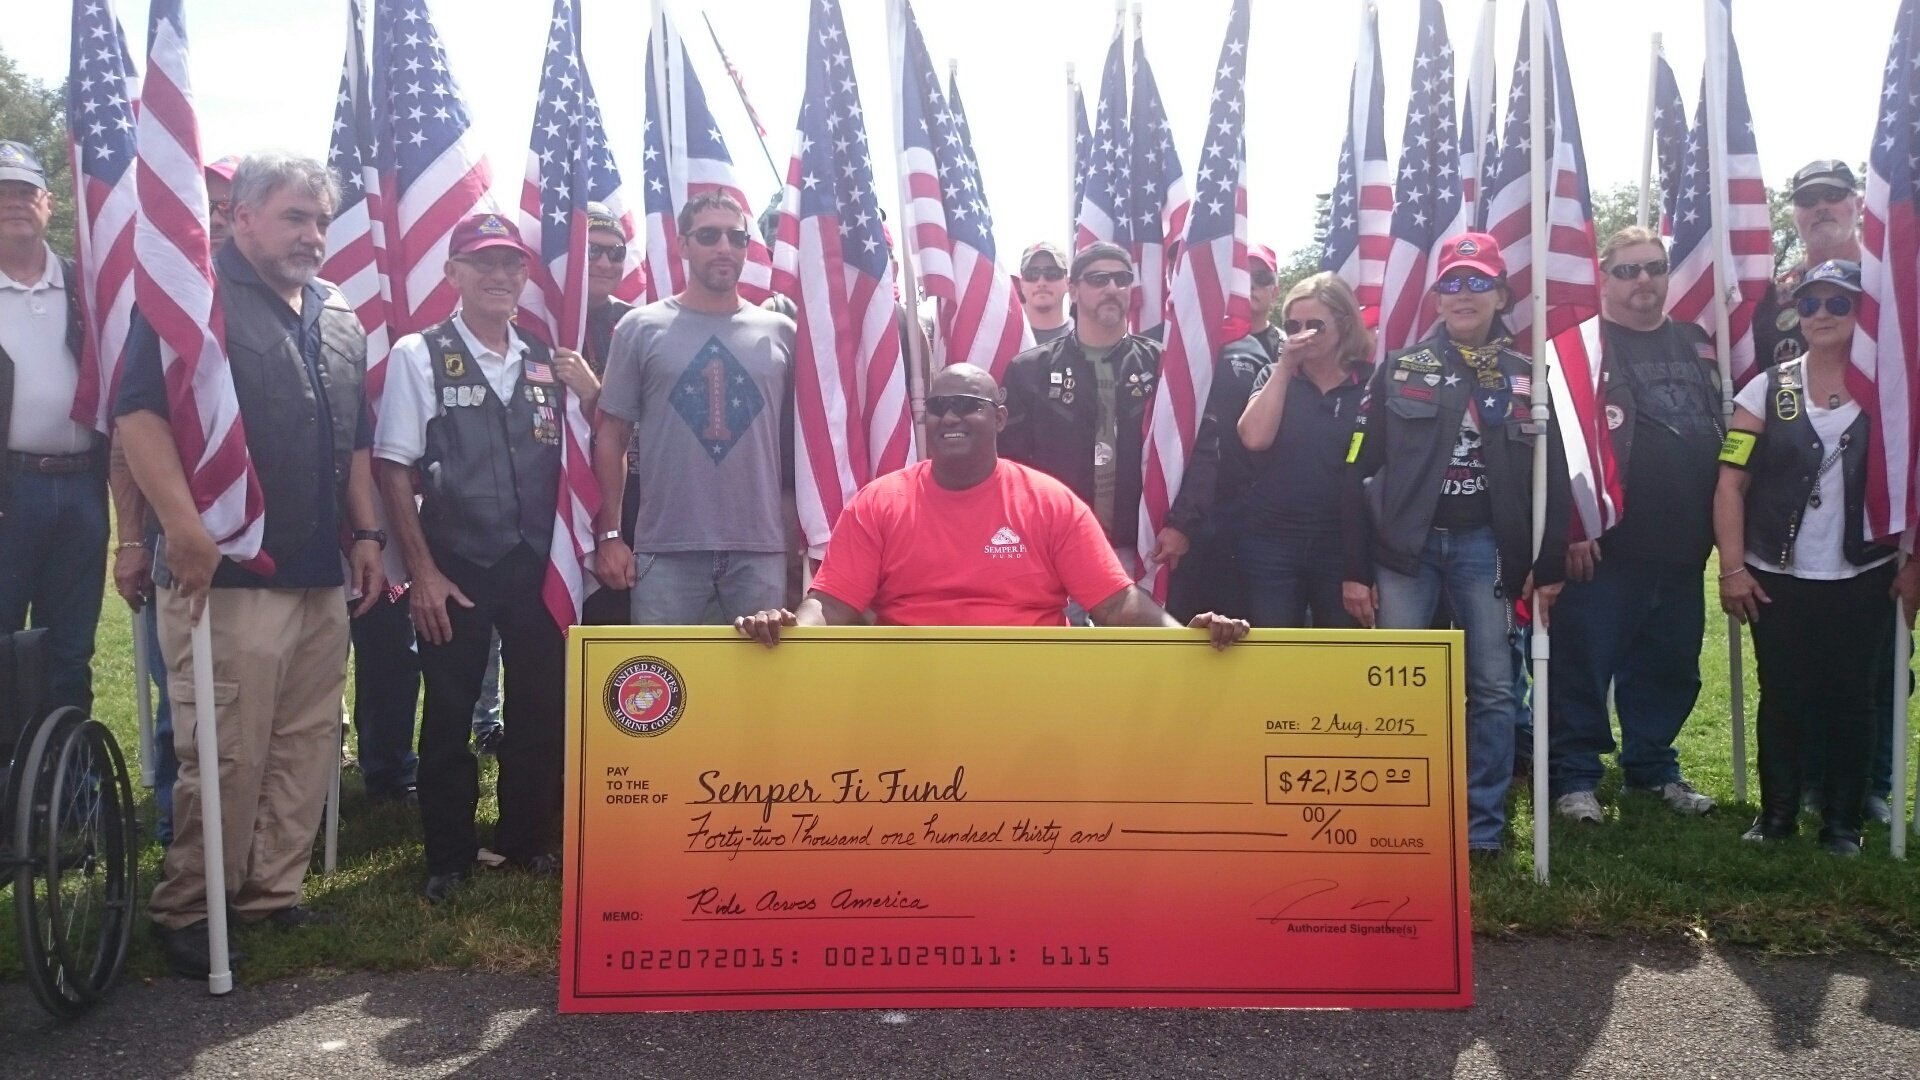 Marine veteran travels over 3,800 miles by handcycle to support other vets